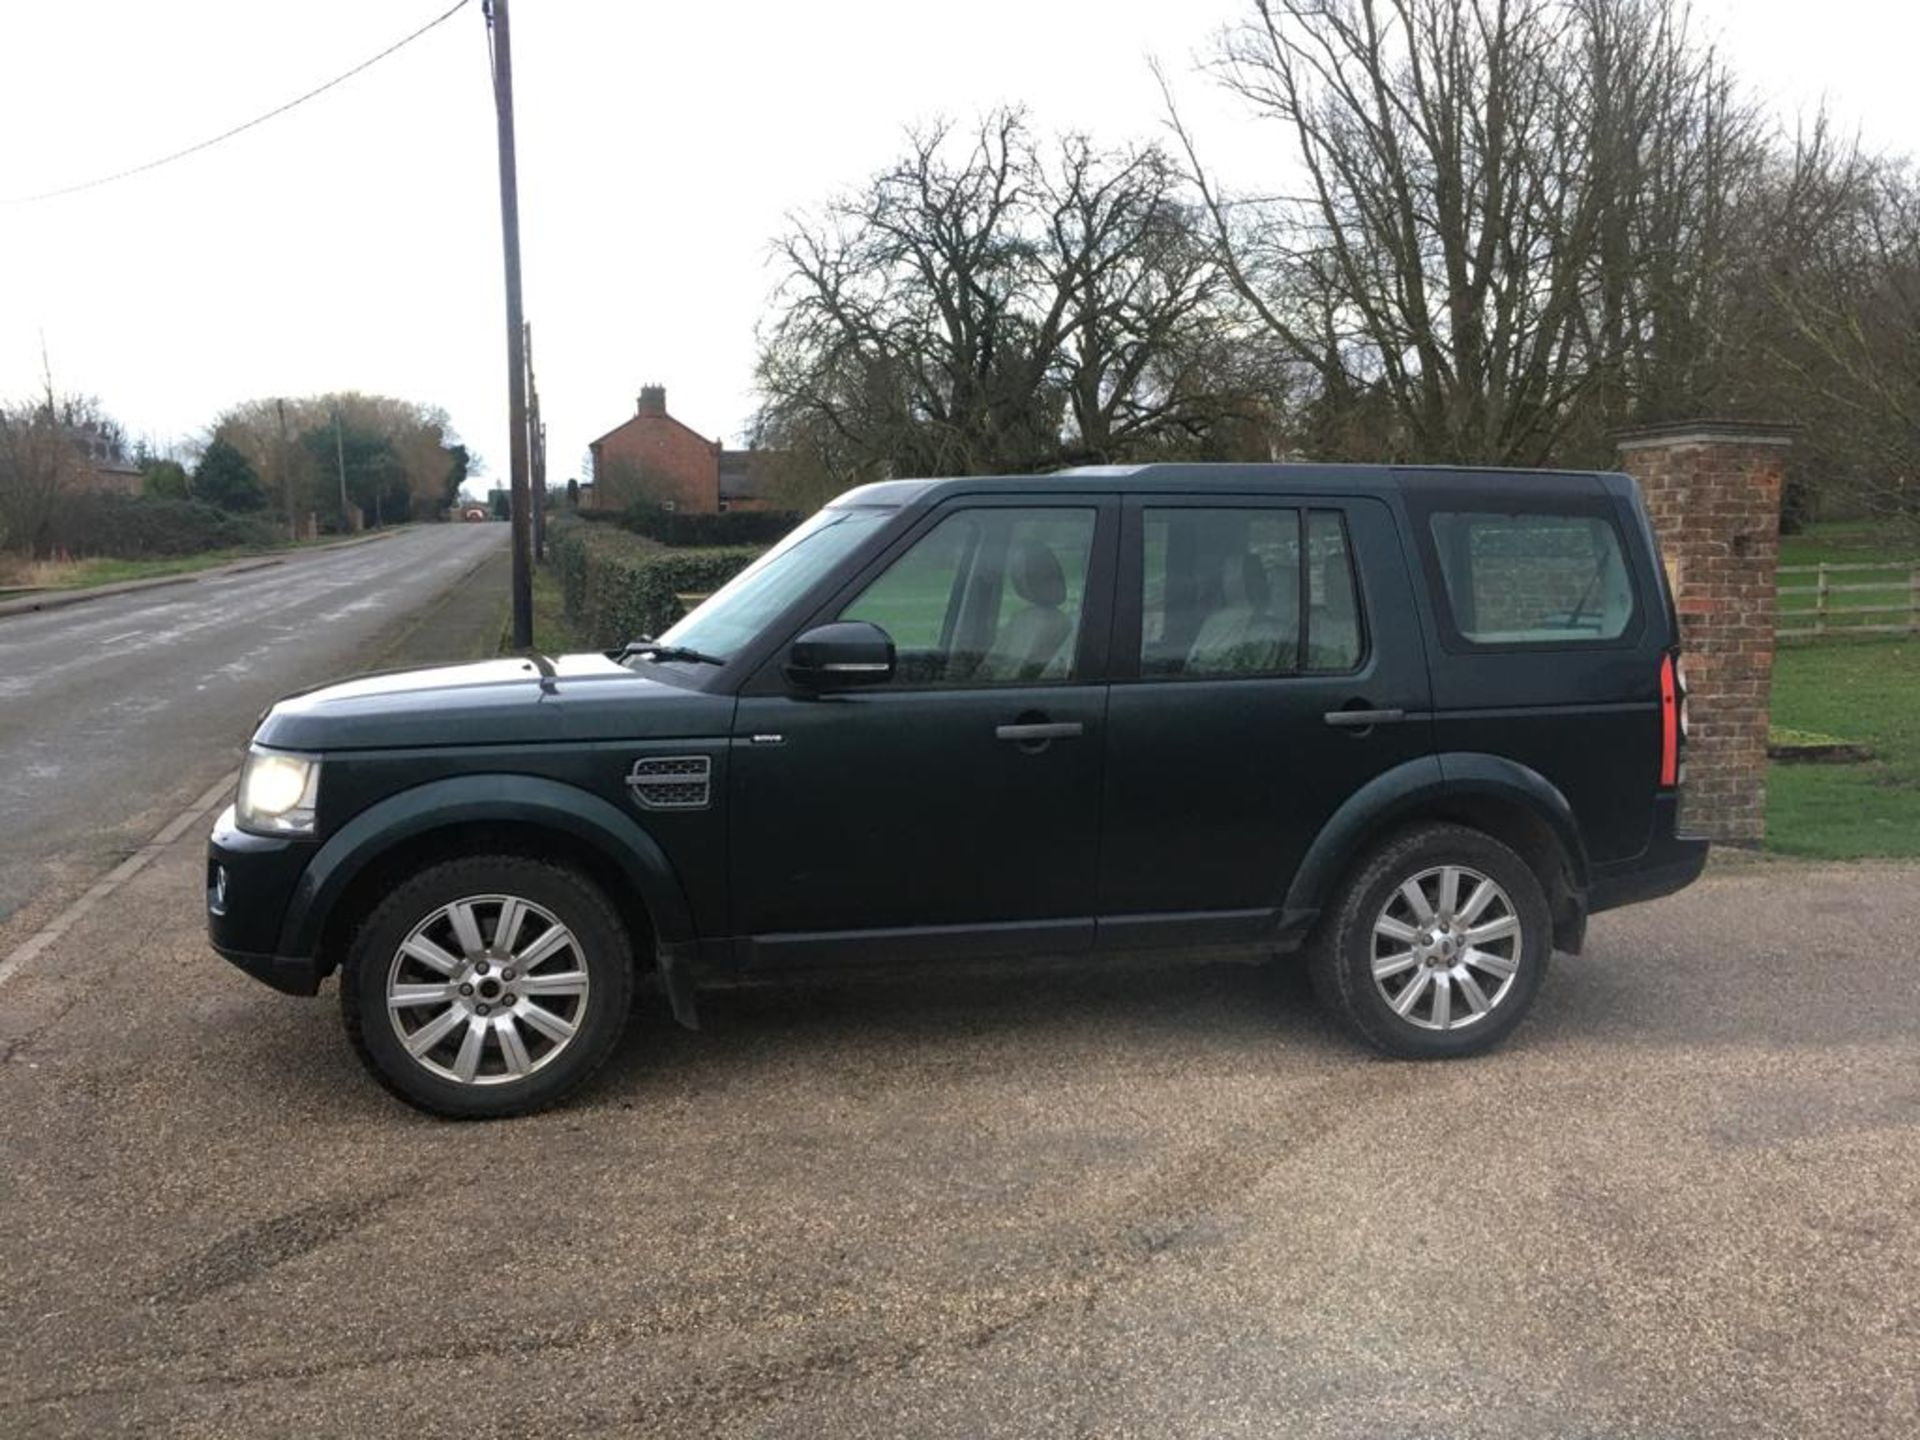 Lot 1 - 2014 LAND ROVER DISCOVERY 4 GS 3.0 TDV6 **EX AUTHORITY**